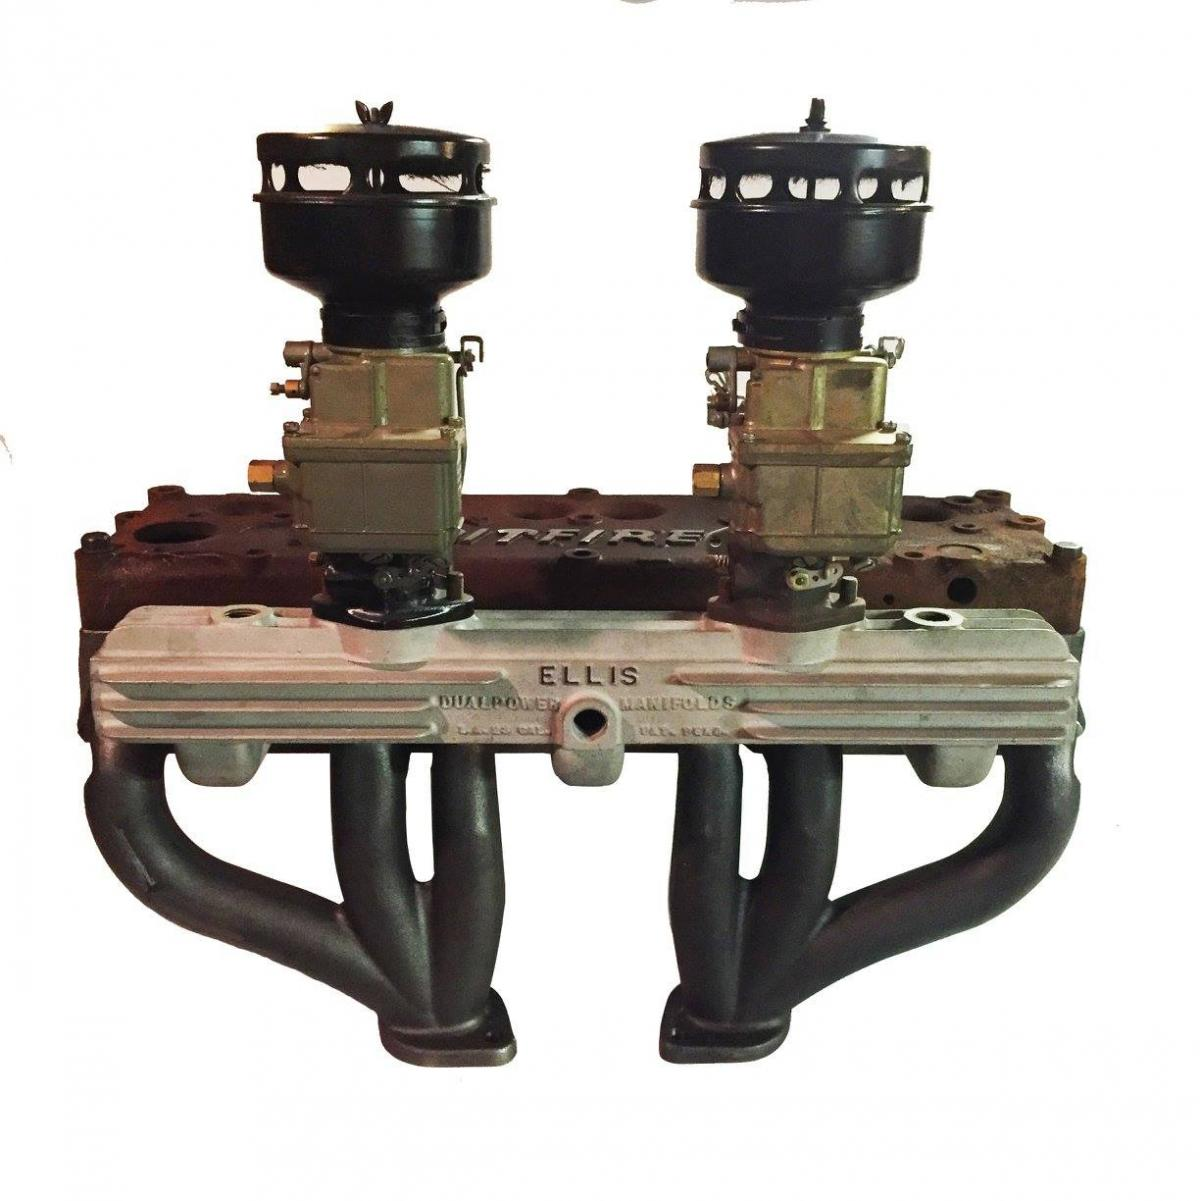 New Dual exhaust manifolds available for 25